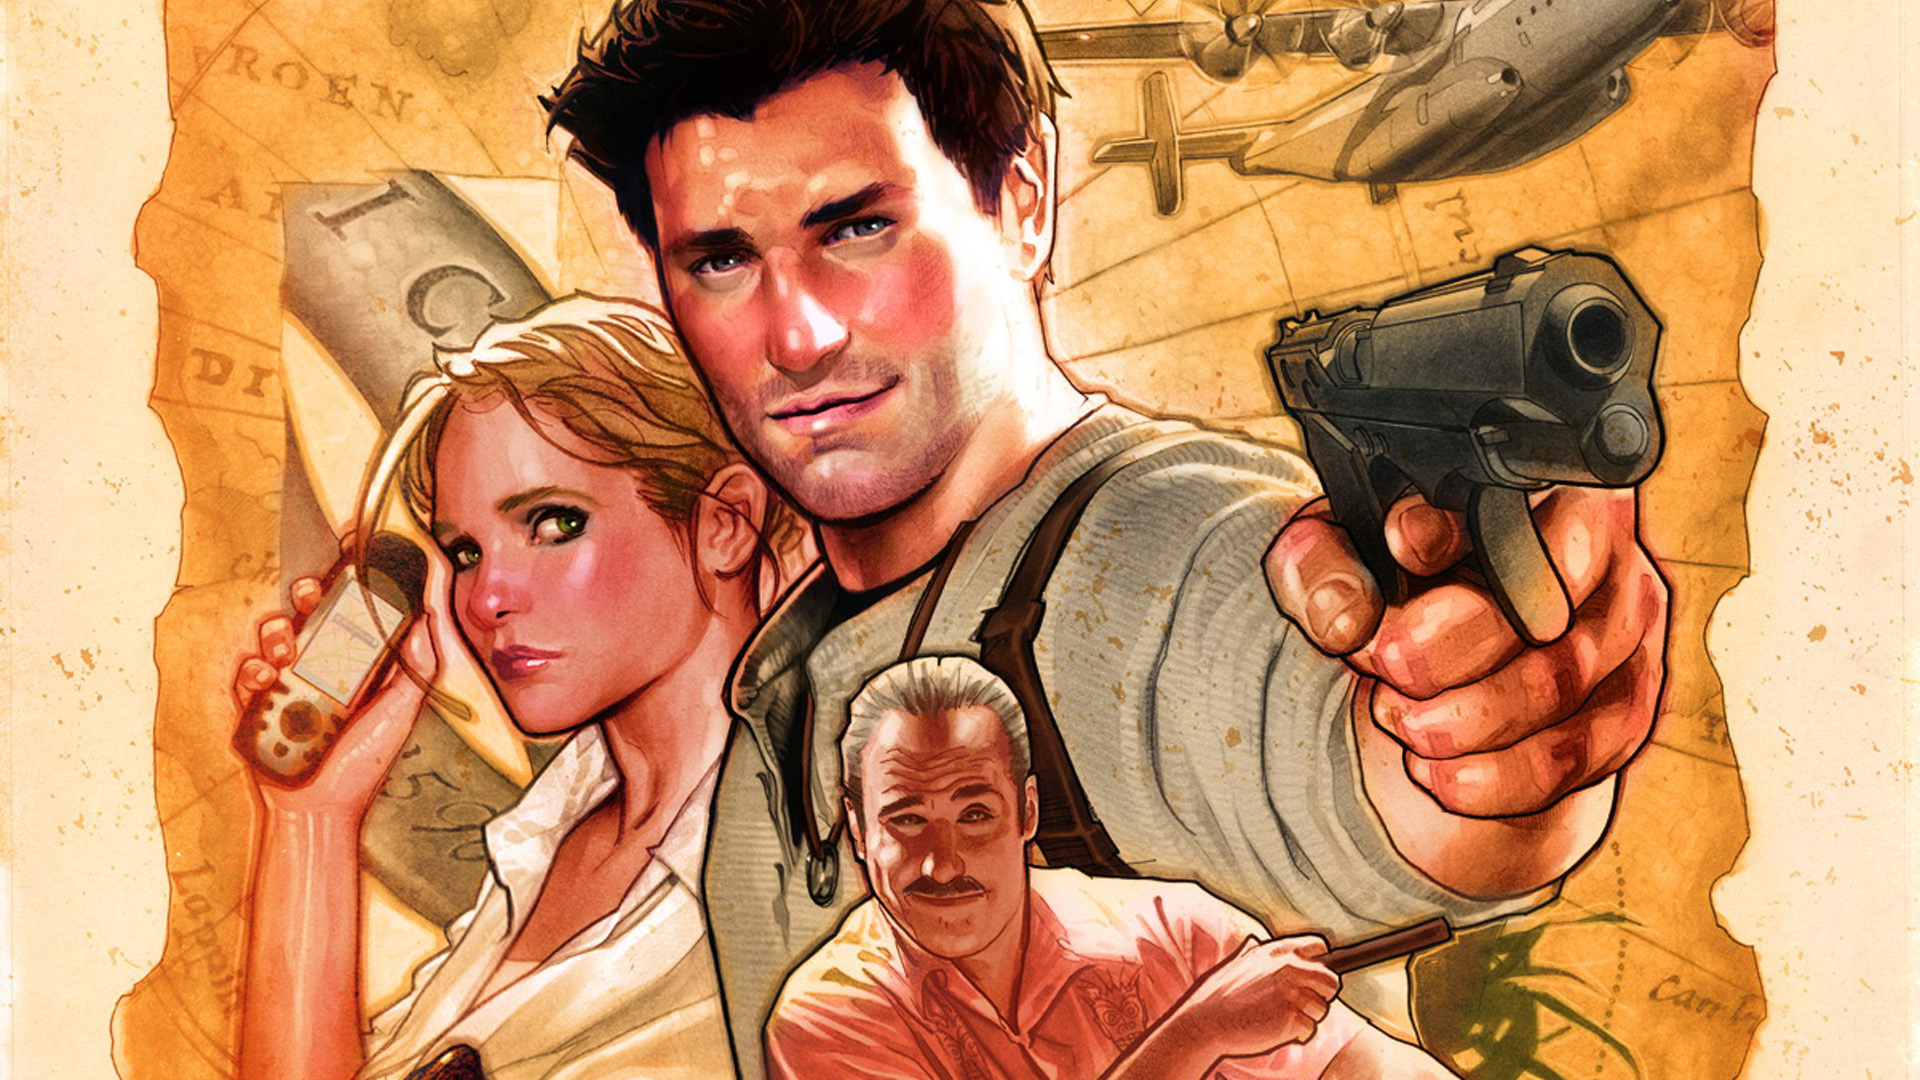 Uncharted 3 Drakes Deception Full HD Wallpaper And Background